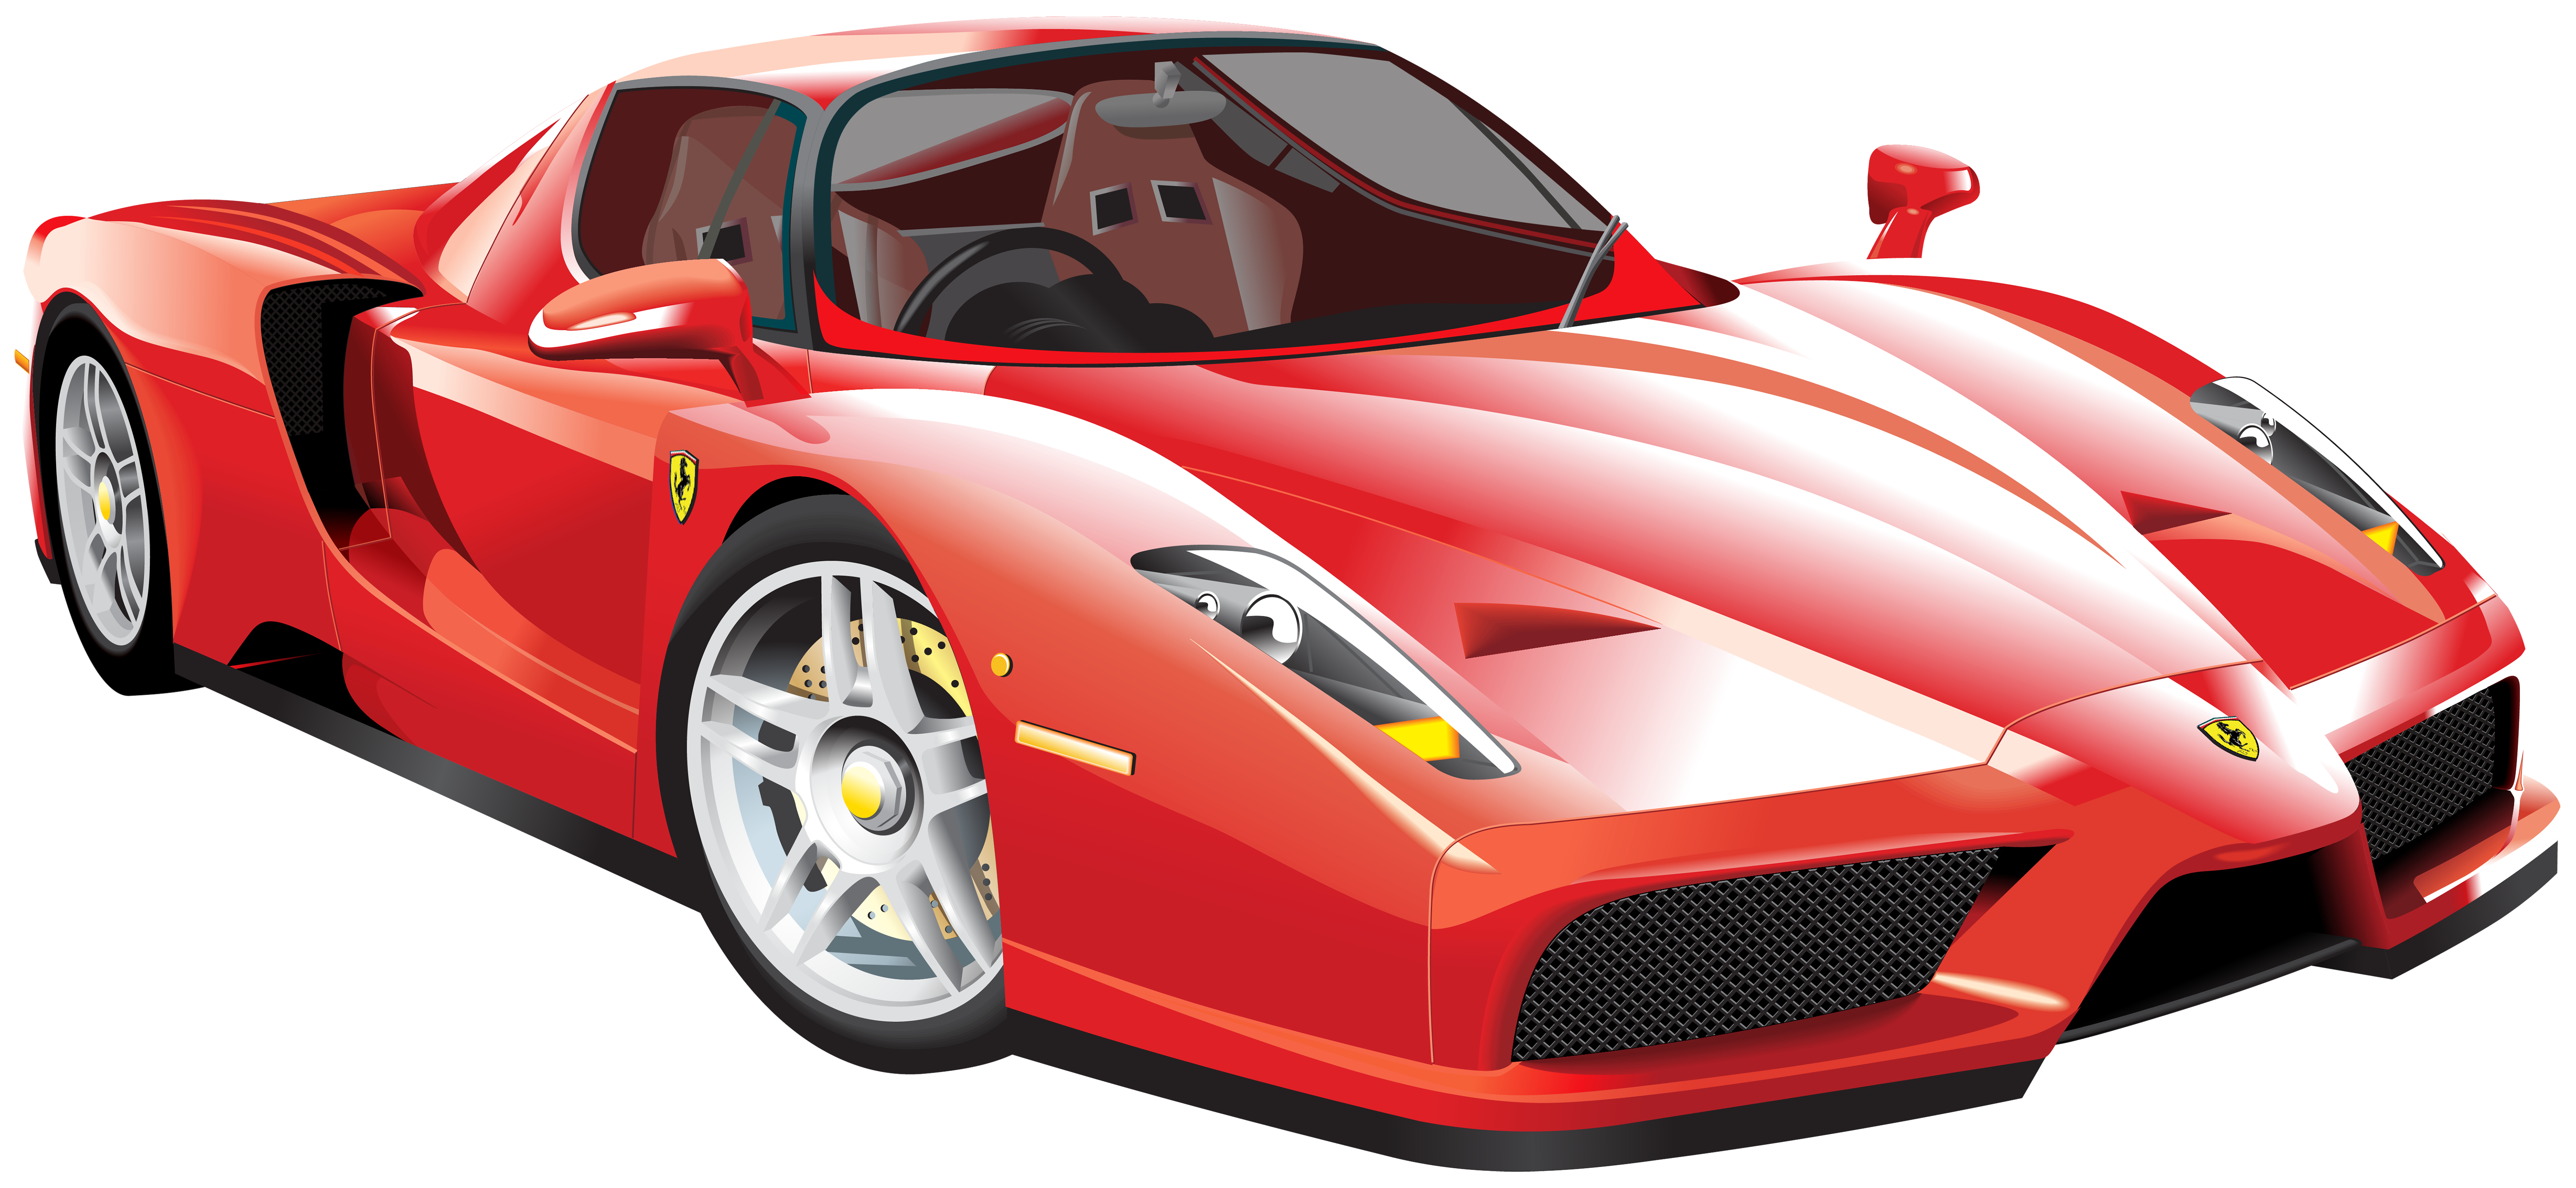 Race clipart vehicle.  collection of car